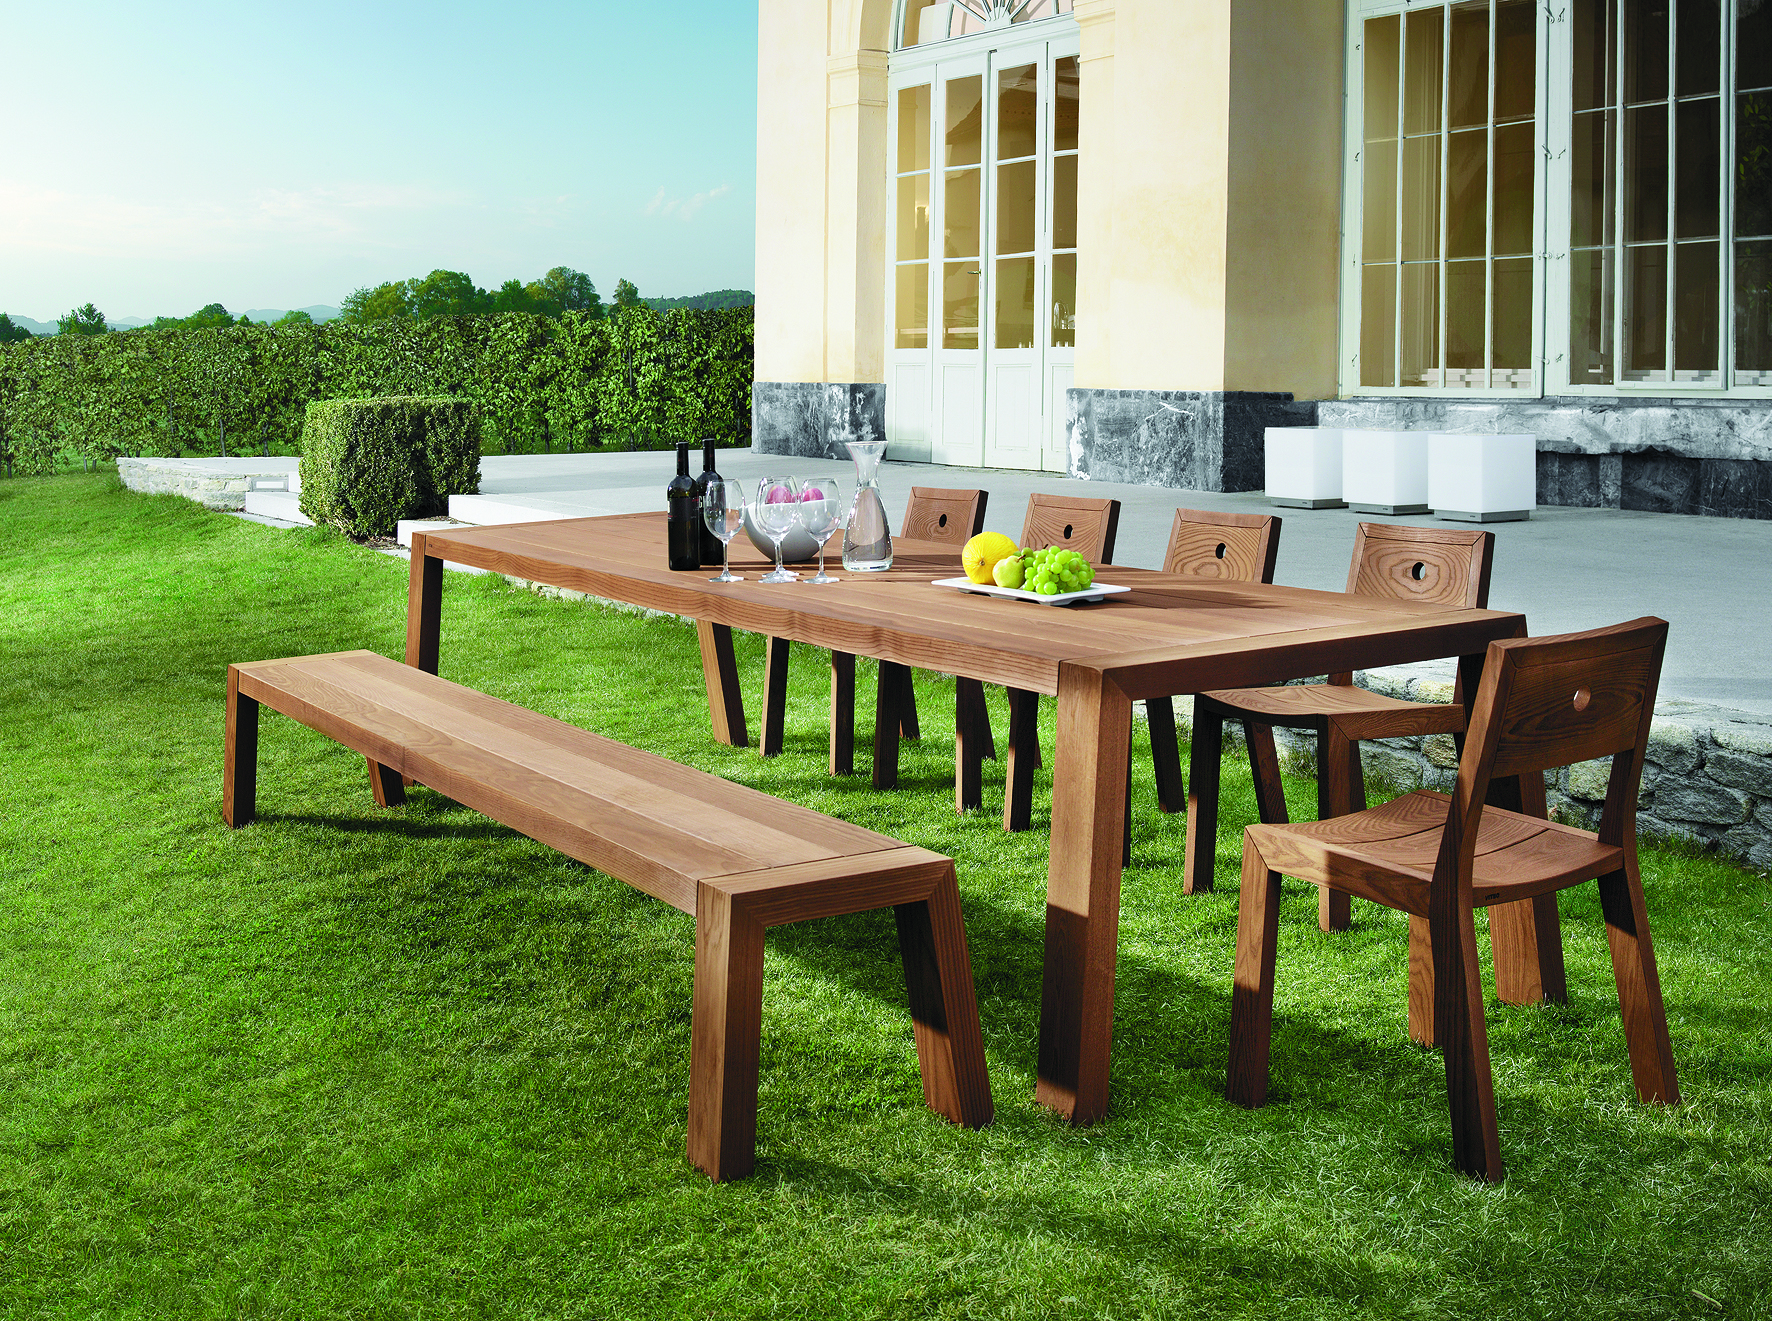 Solo Modern Garden Furniture By ViteoSolo By Viteo From Encompass. Quirky Modern  Design Garden Tables, Benches, Carver Chairs In FSC Iroko Or Teak.